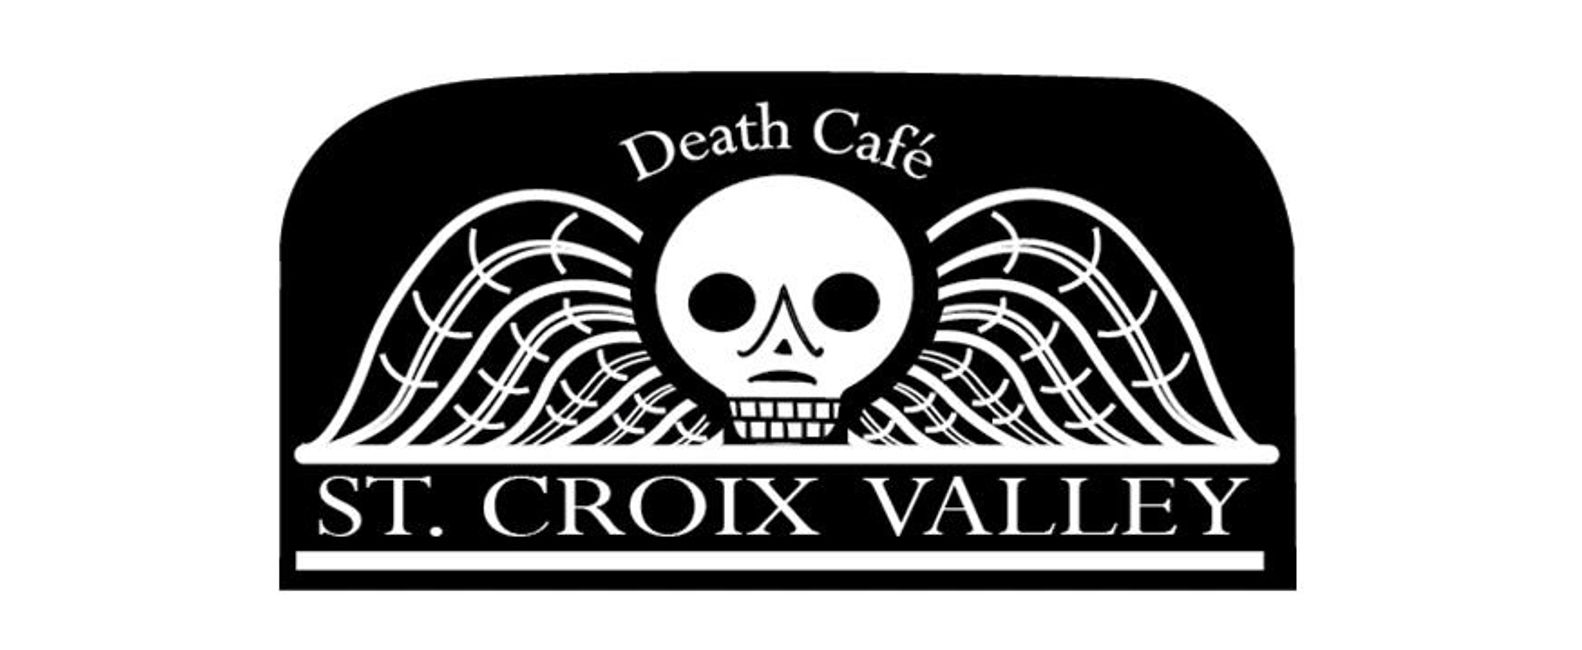 Death Cafe St. Croix Valley